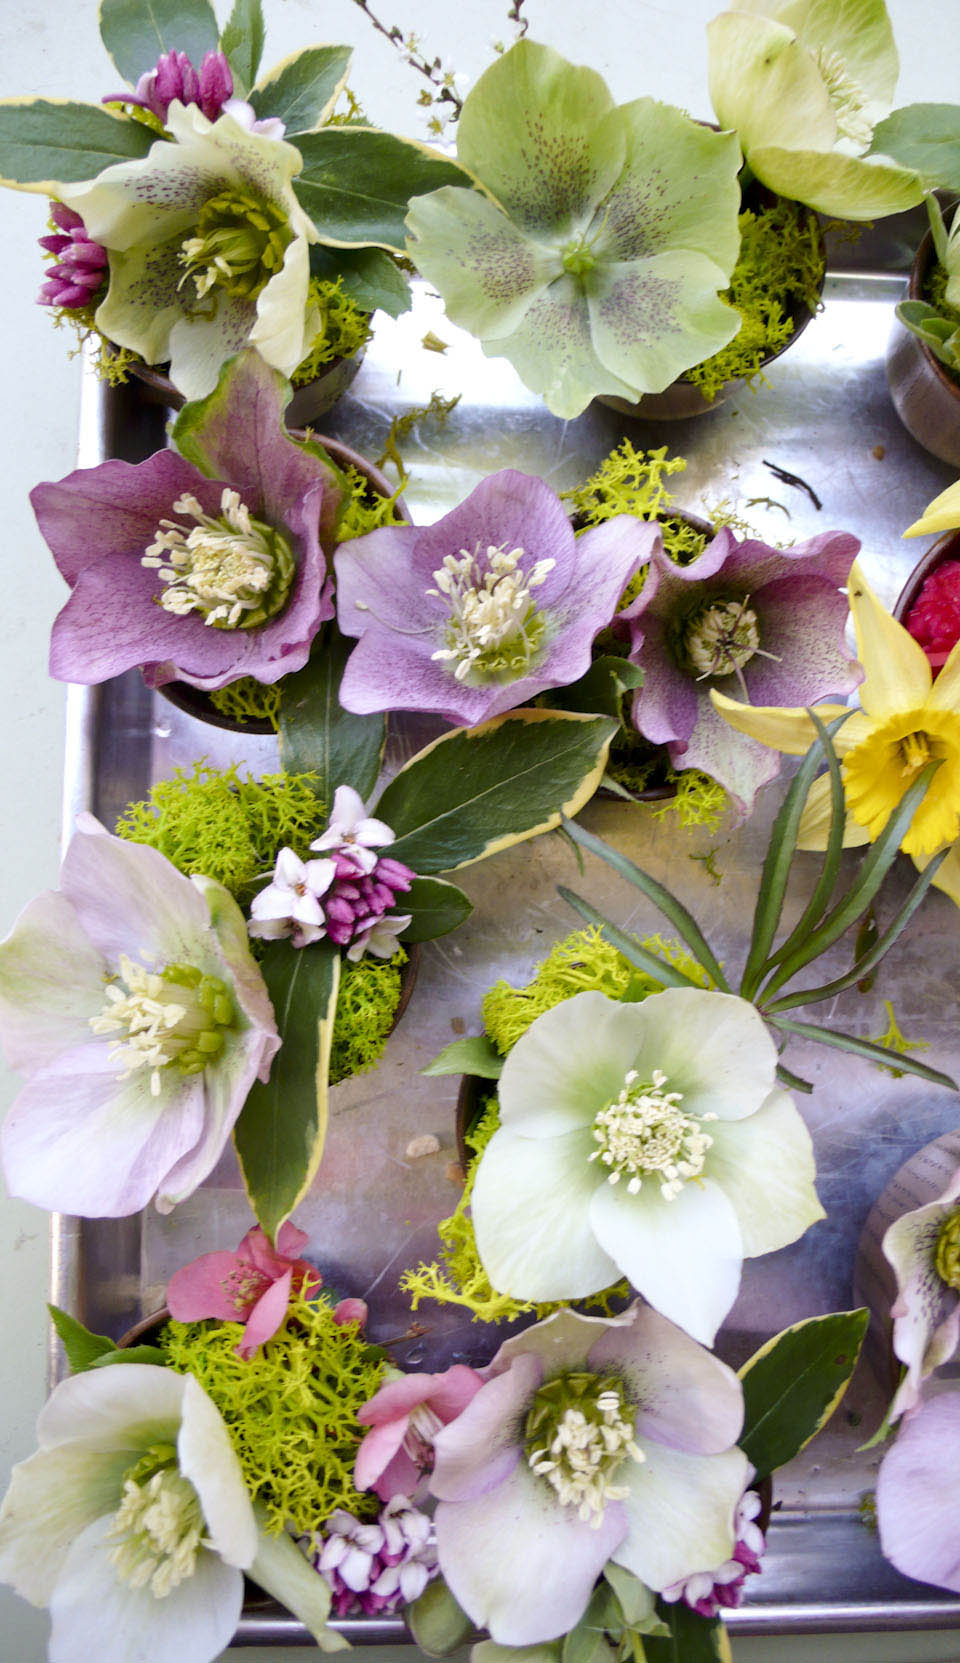 hellebores_daffodils_quince-1000223.jpg